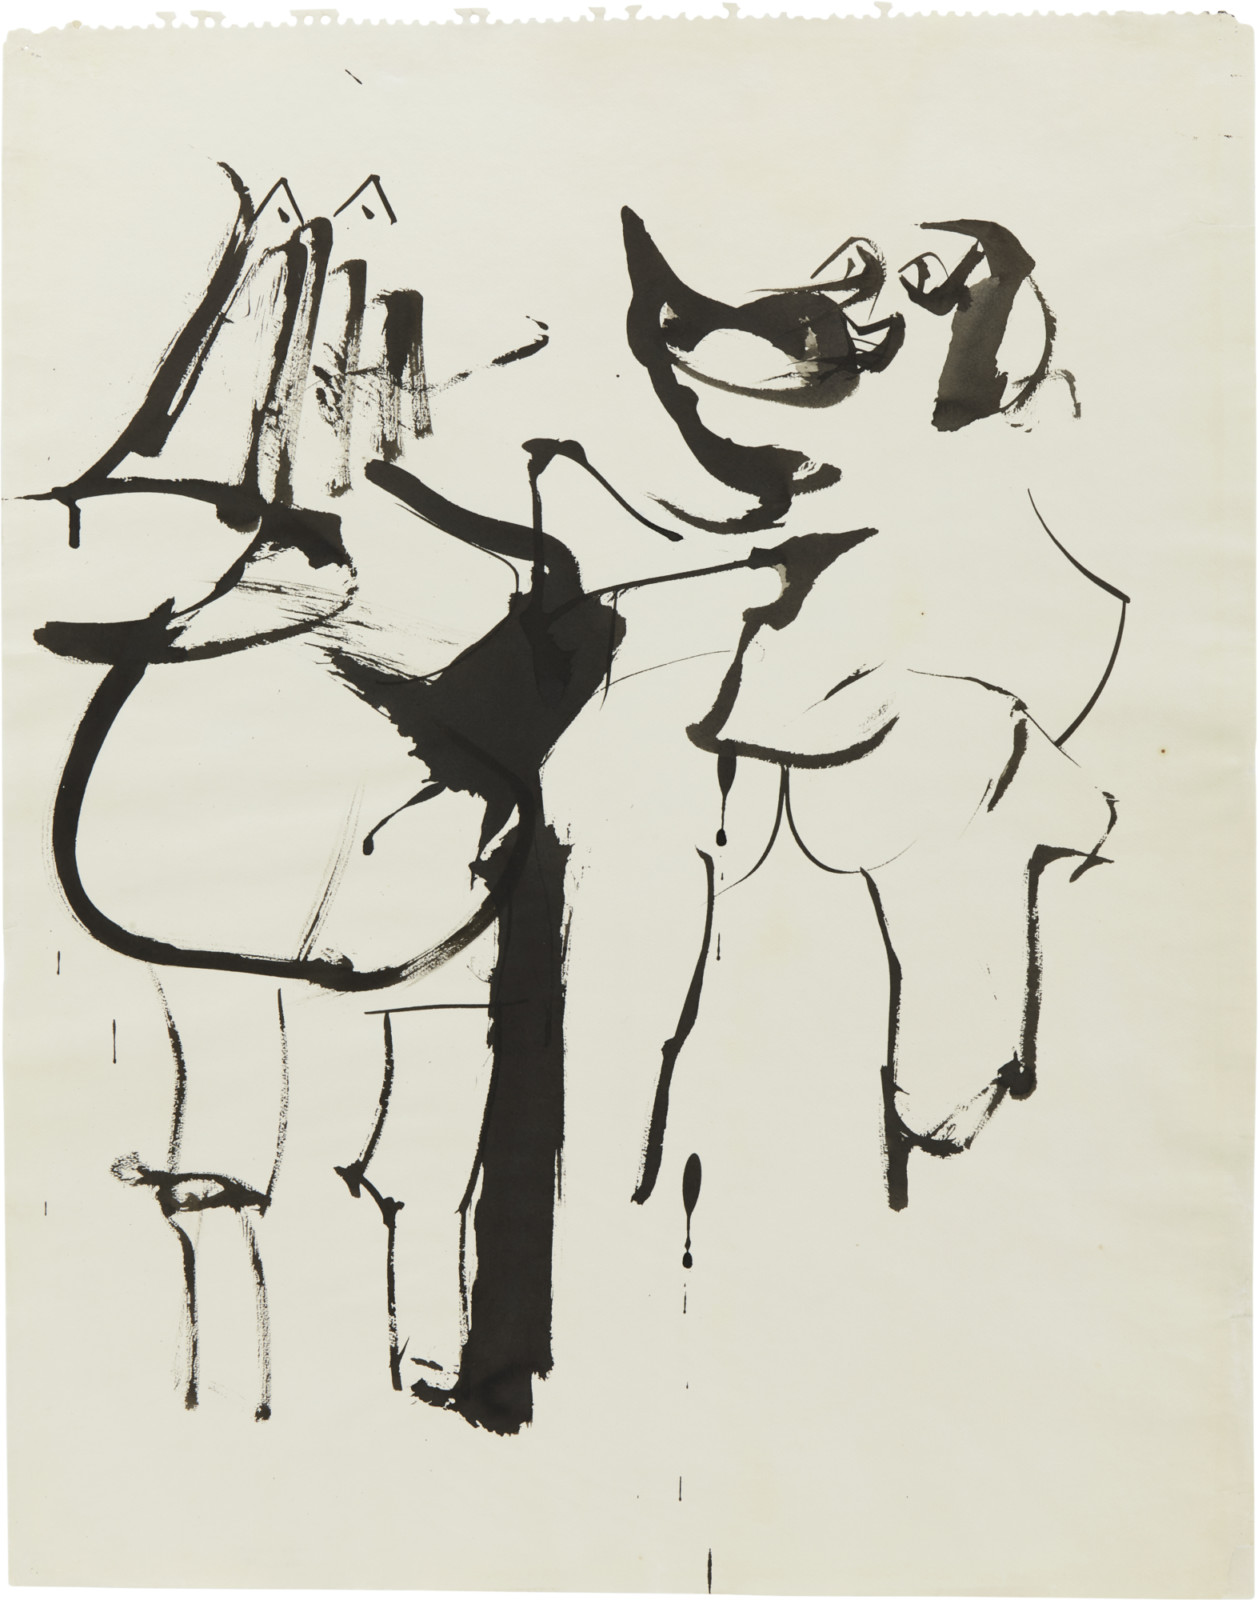 Drawing, dated 1955